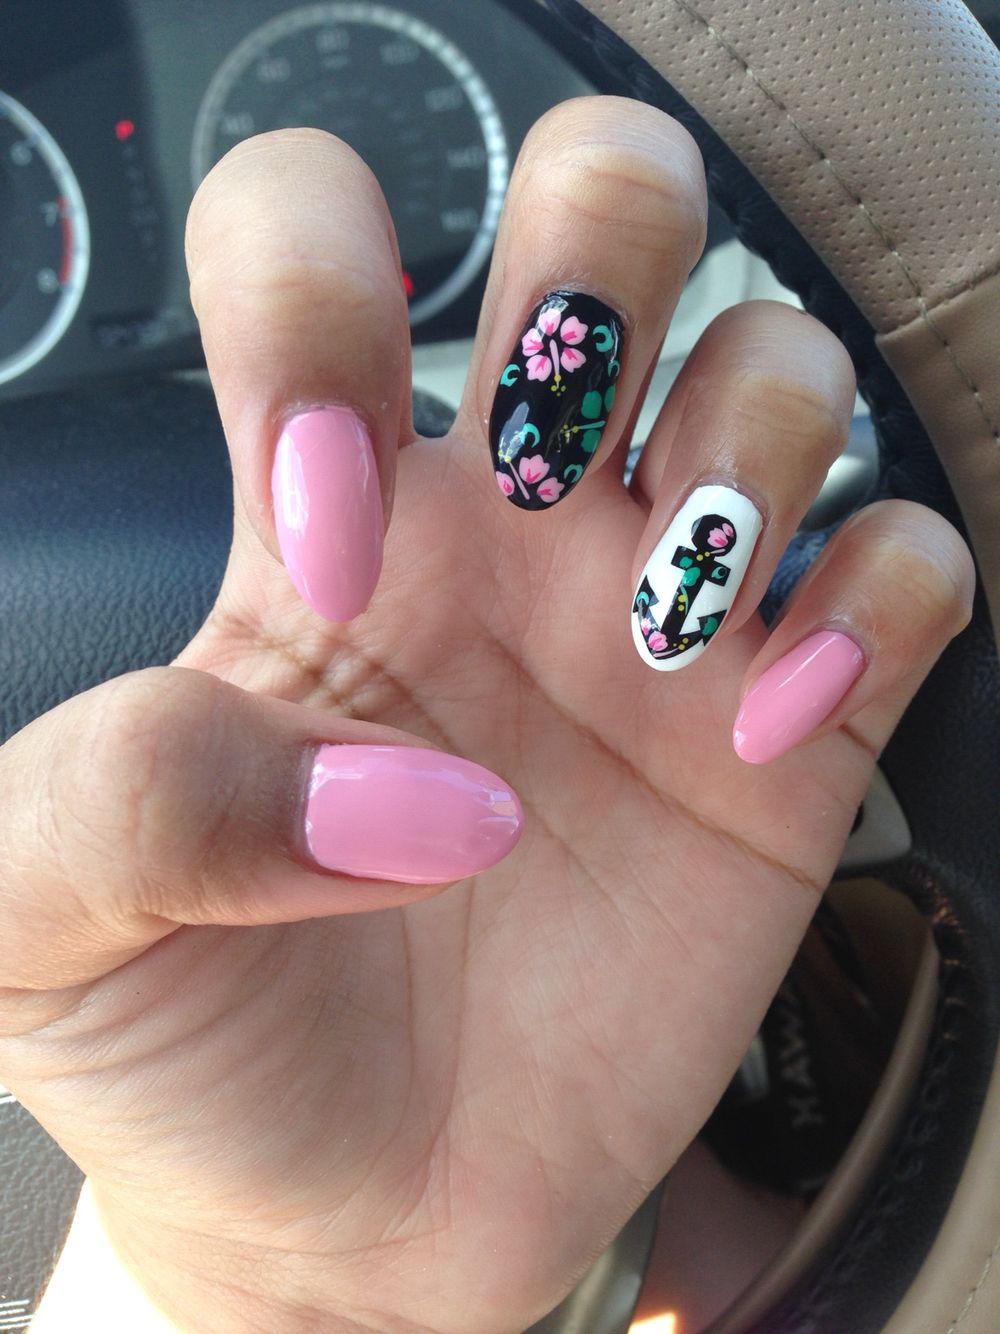 Pink with floral & anchor designs, gel nails, almond shaped. | Nails ...